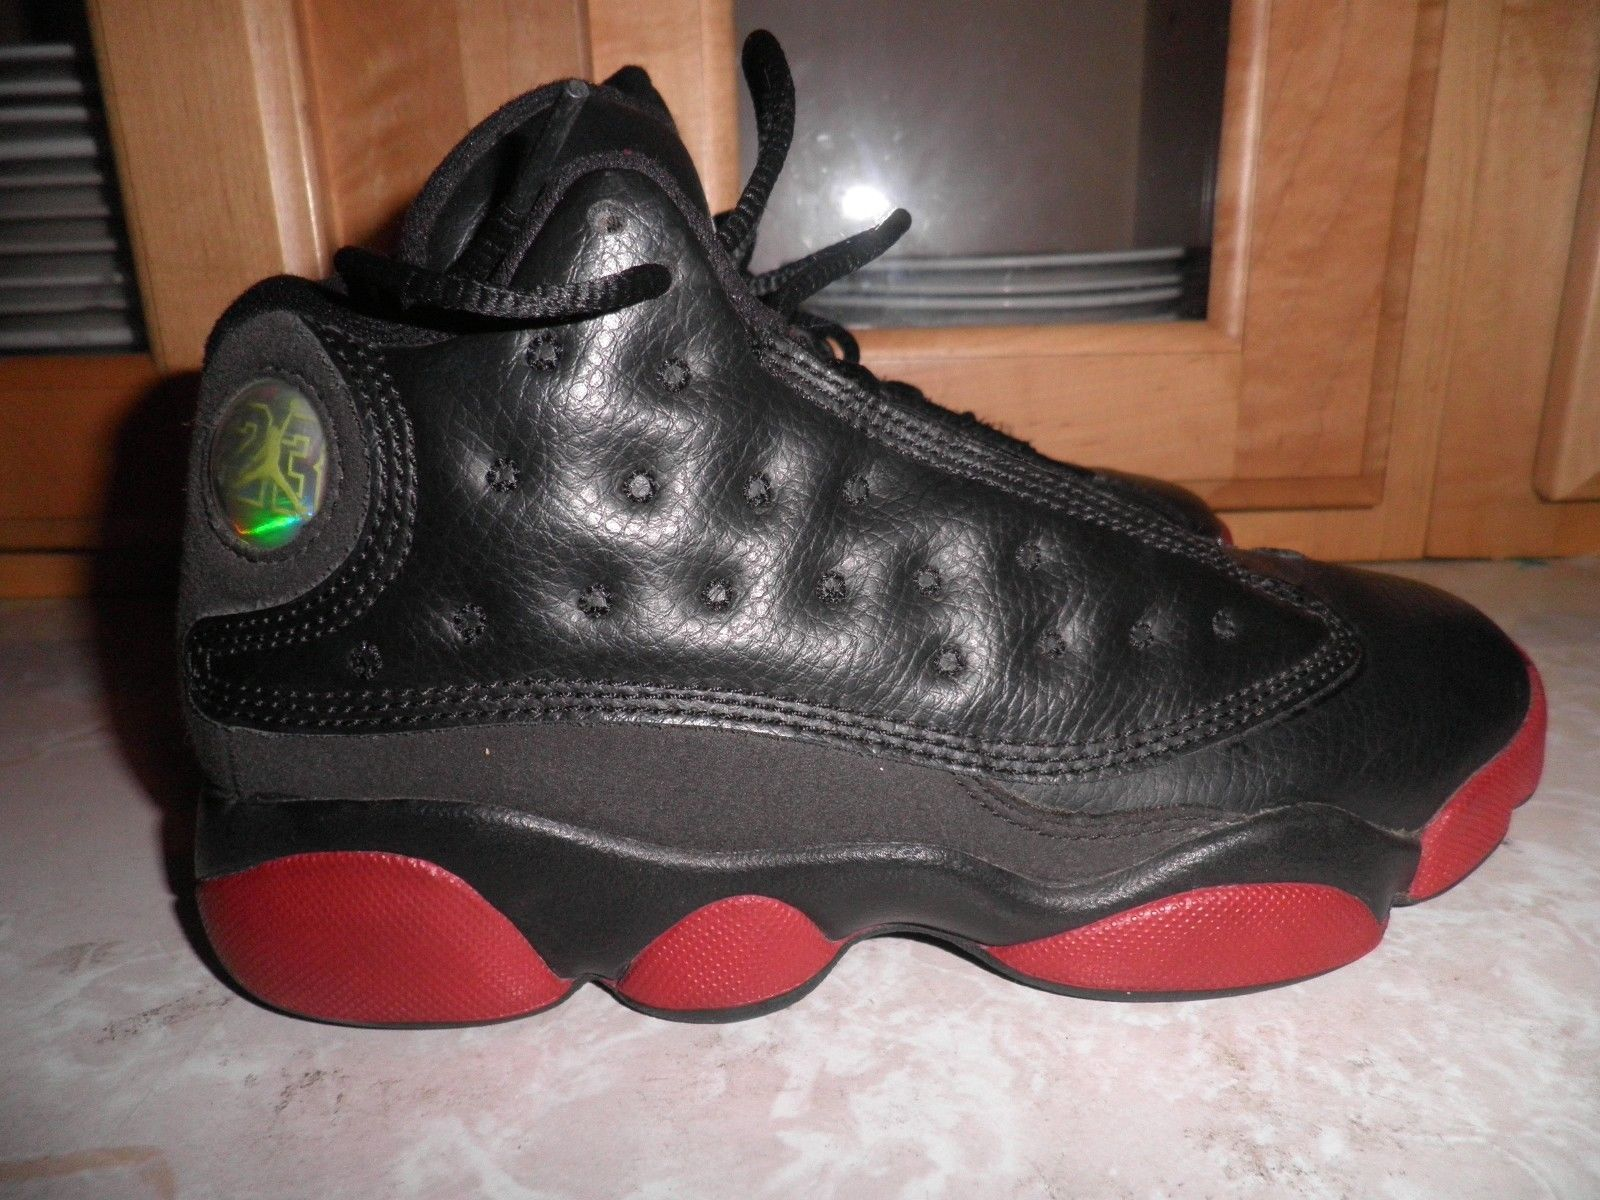 finest selection aaf6a 28534 Boys Nike Air Jordan Retro 13 Shoes 414575-003 Size 1.5 Y ...